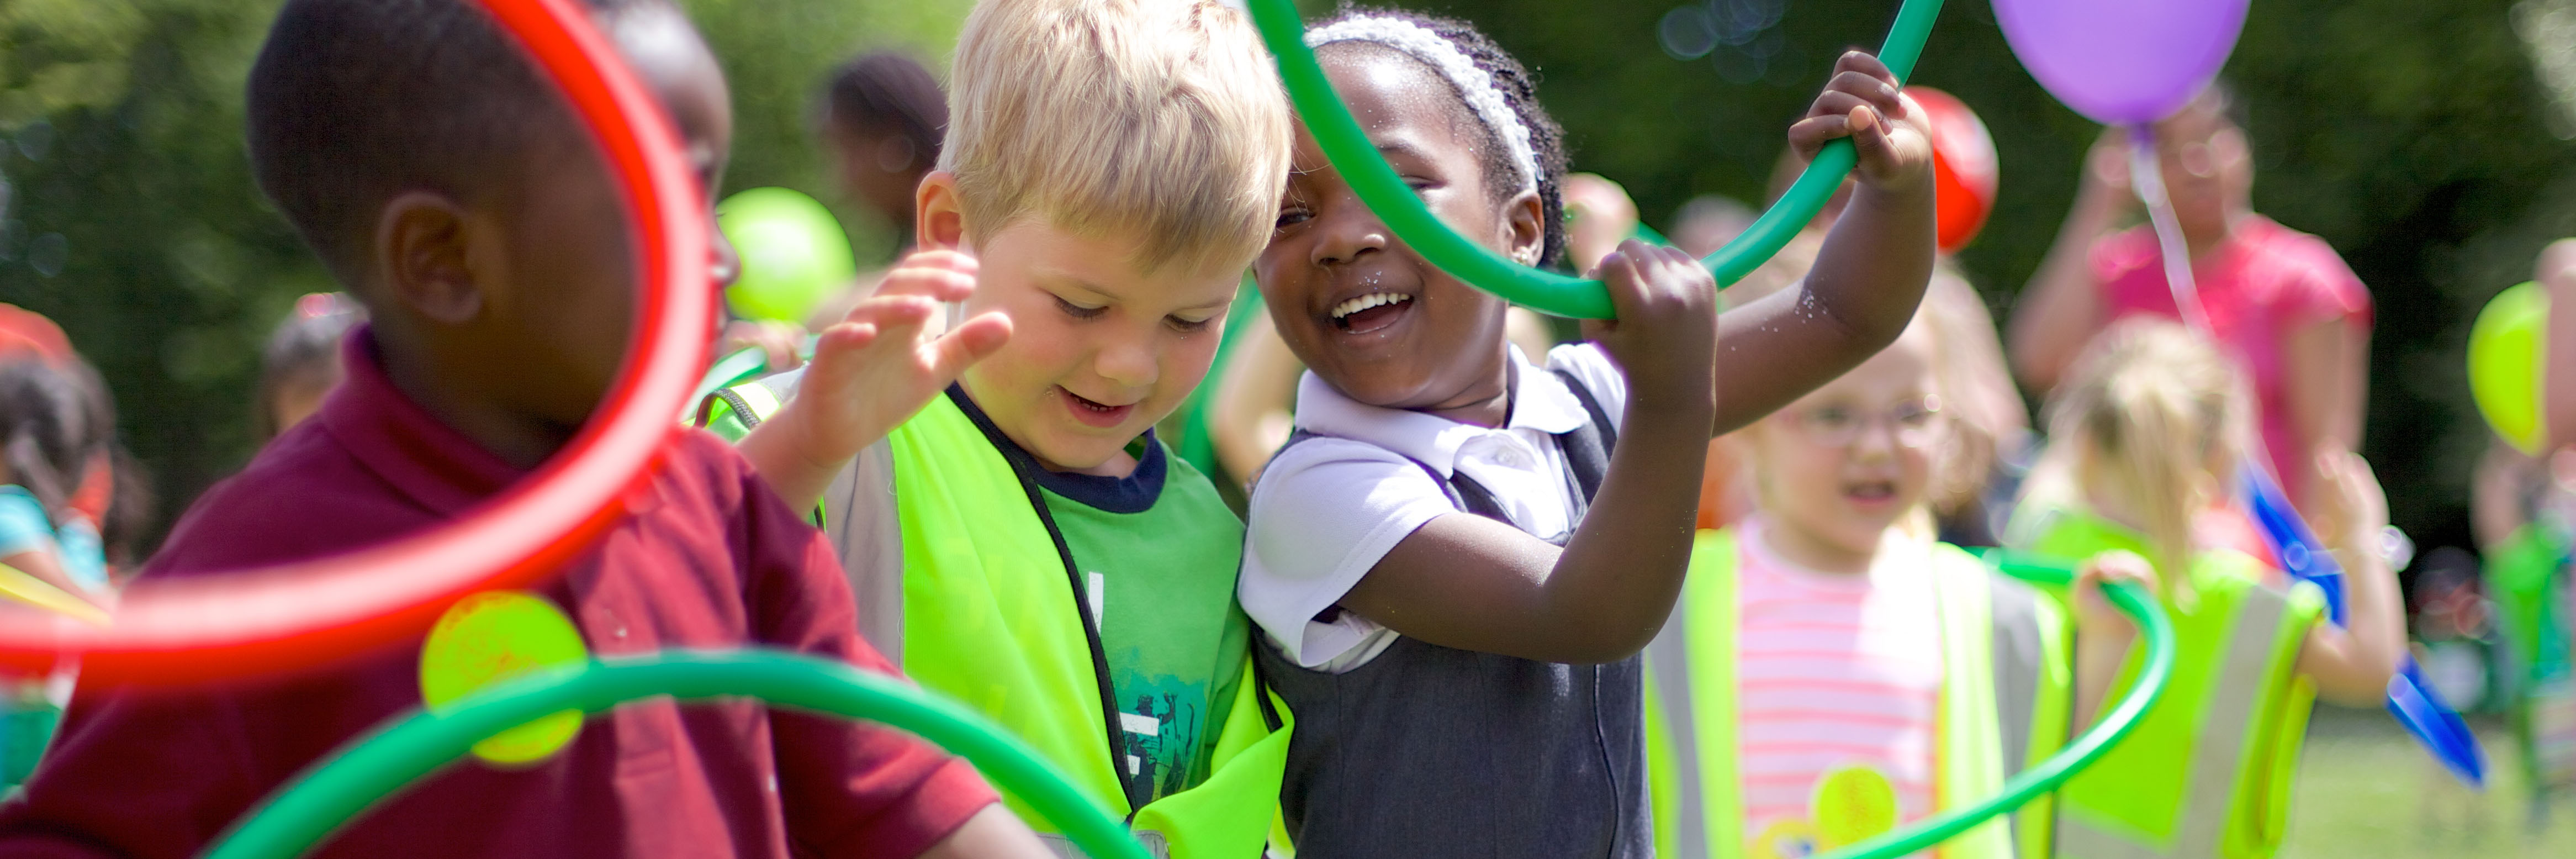 boys and girls playing - challenging gender stereotypes blog